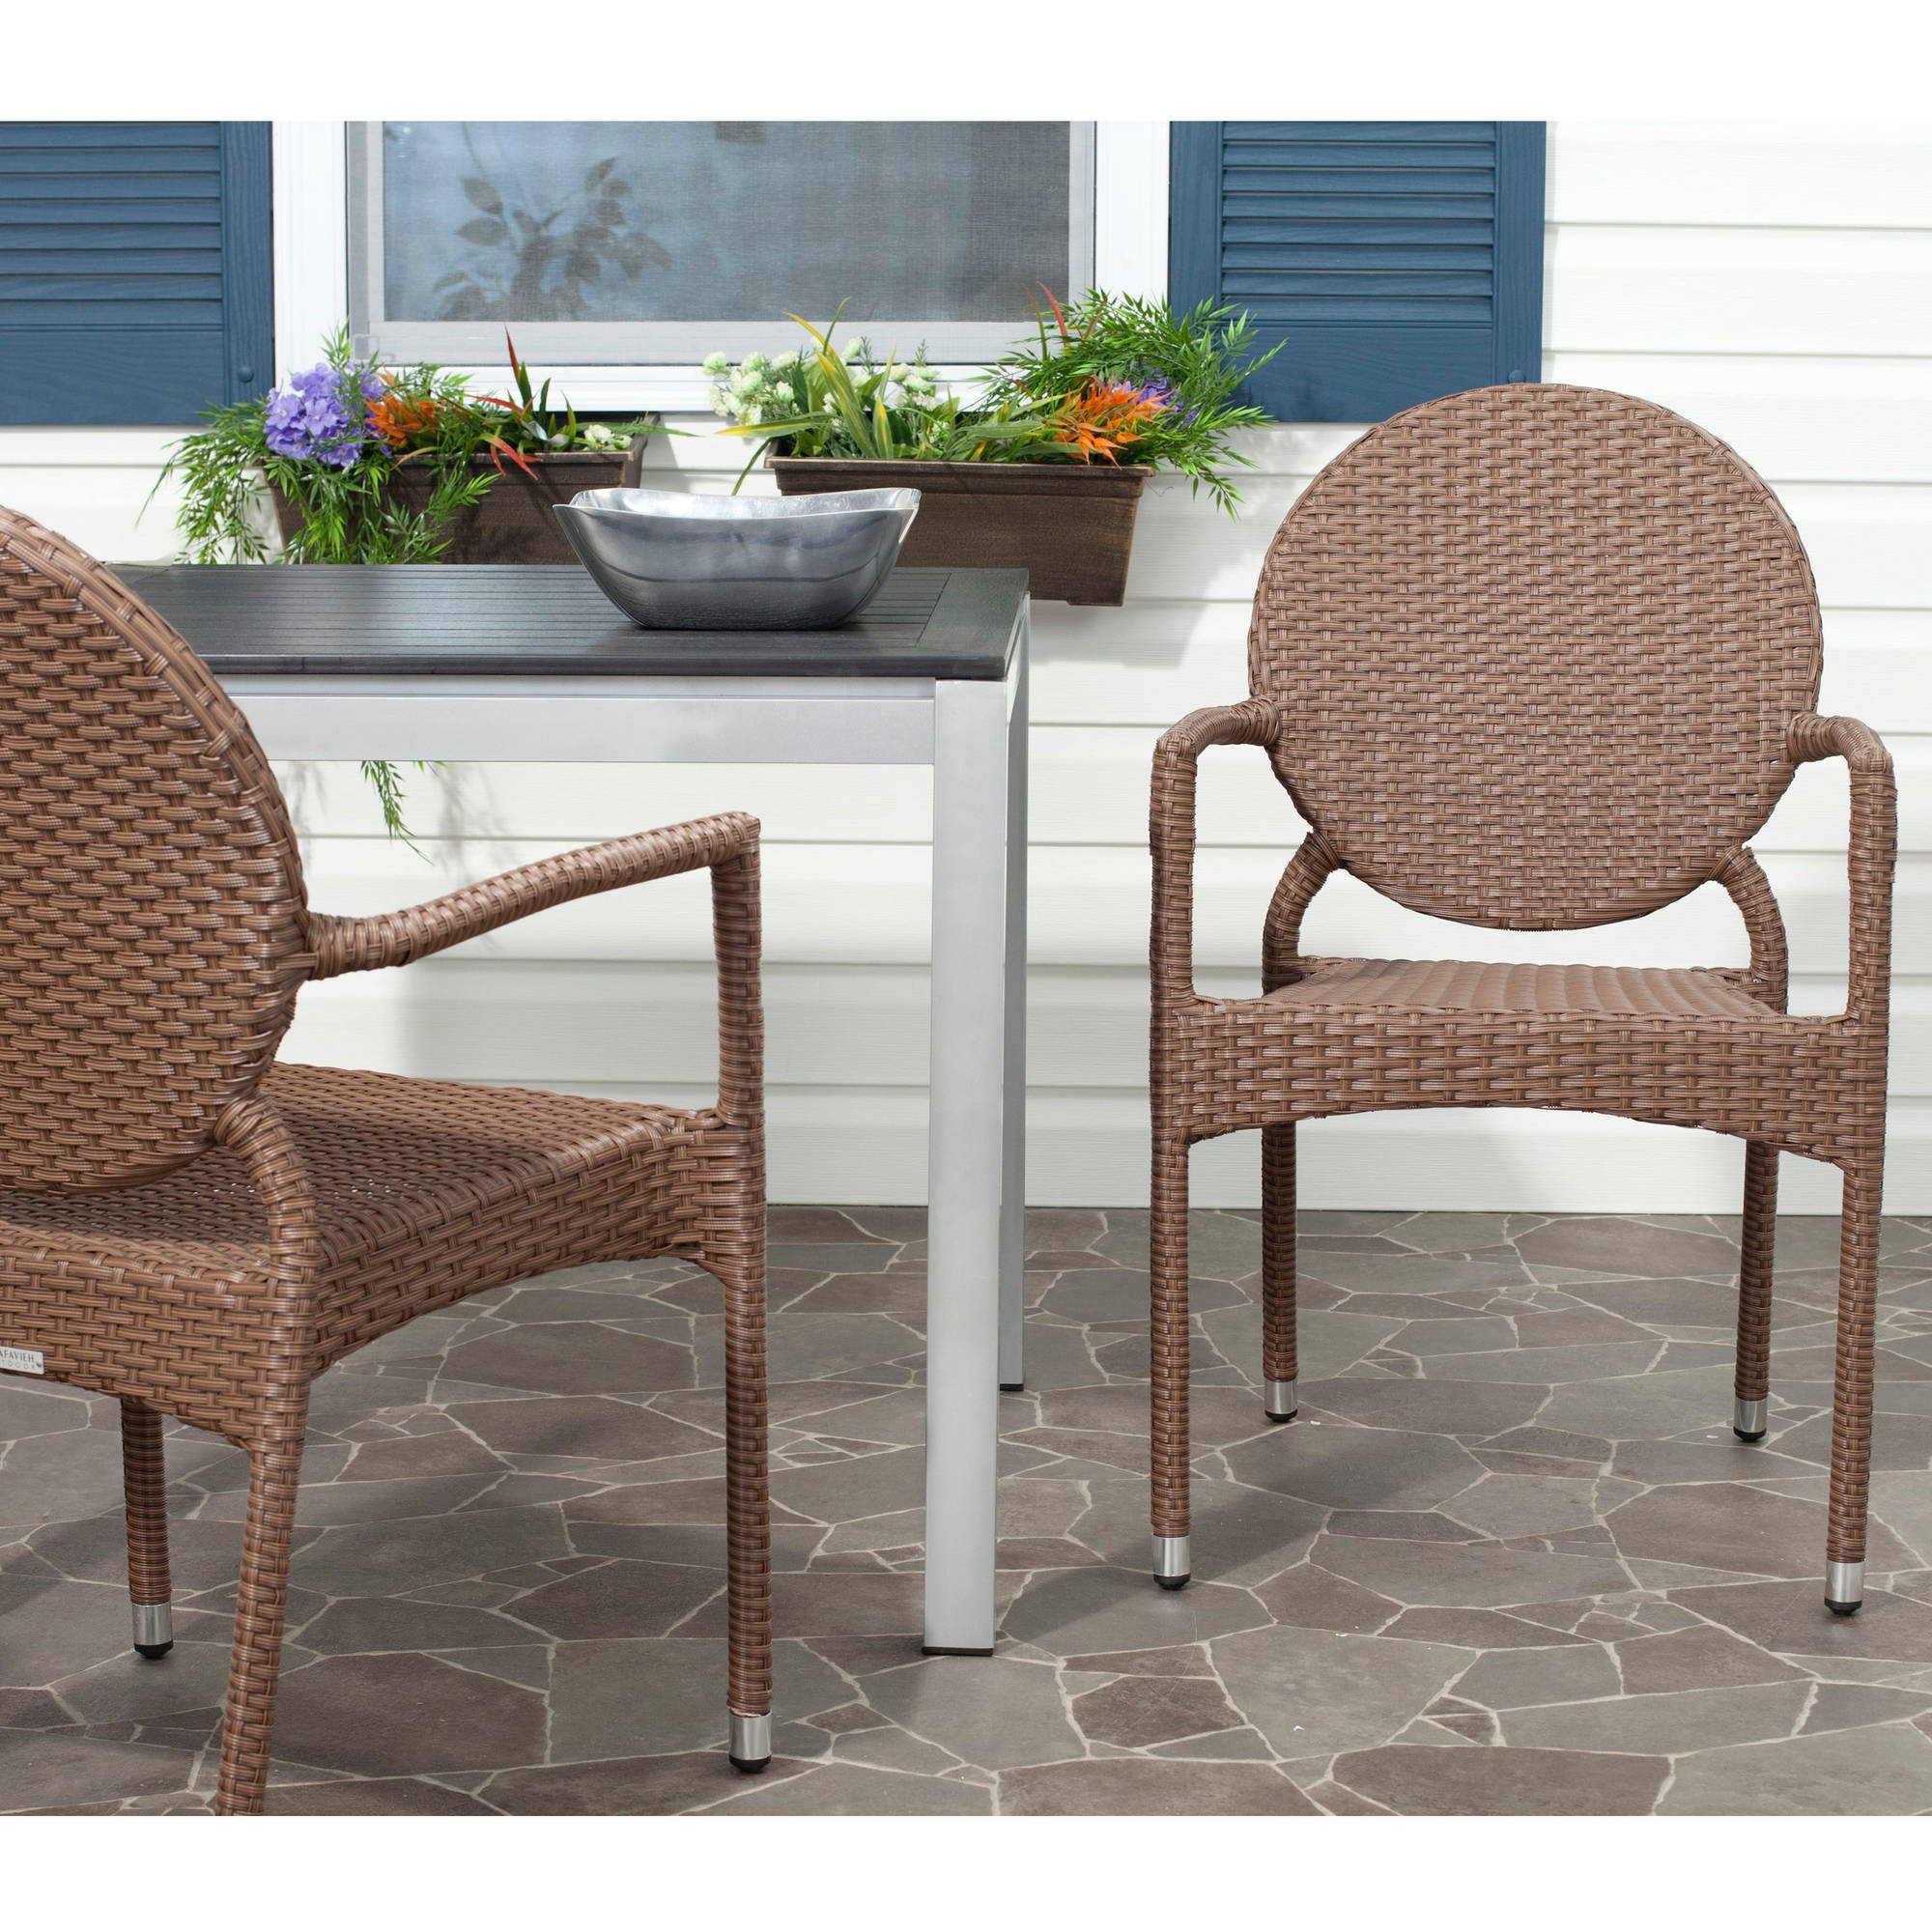 Safavieh Valdez Wicker Indoor-Outdoor Stacking Side Chair, Set of 2